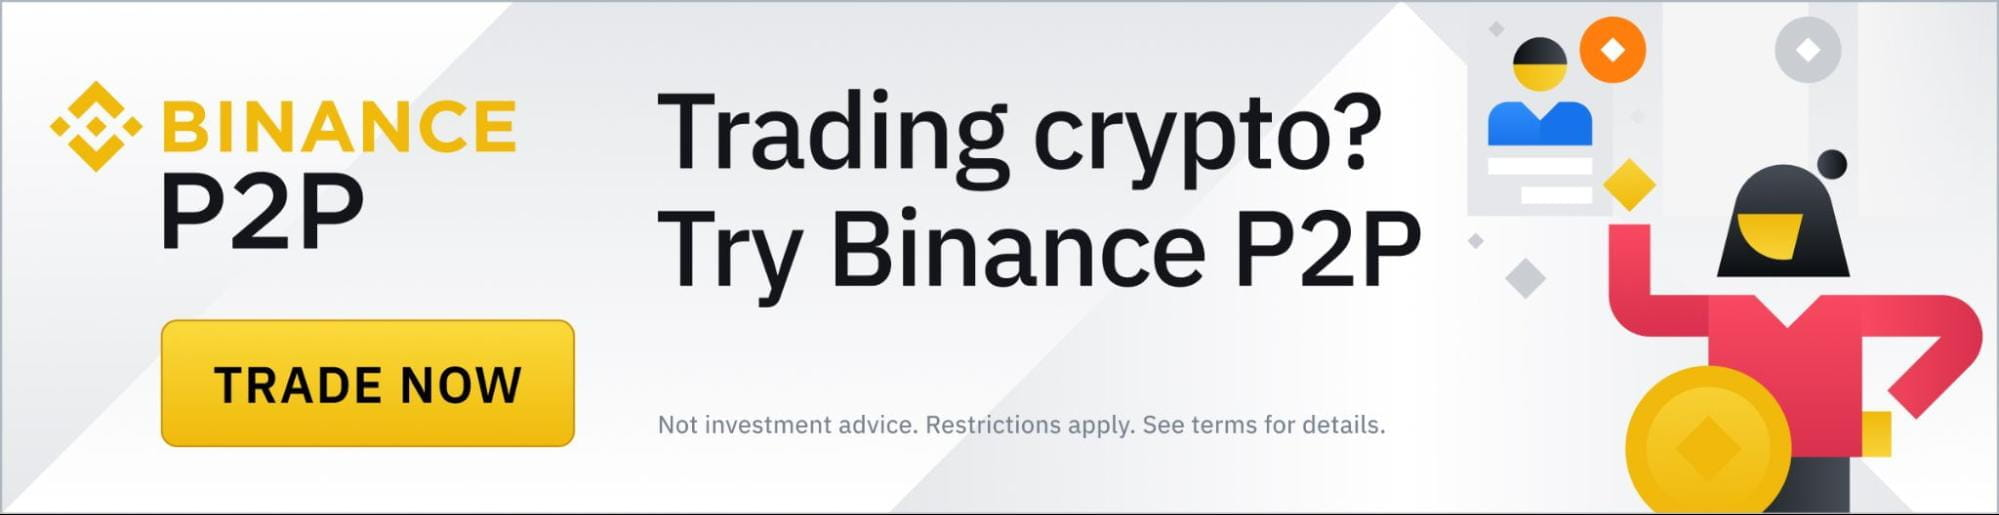 Binance P2P: A Complete Guide to Combatting ChargebacksCryptocurrency Trading Signals, Strategies & Templates | DexStrats